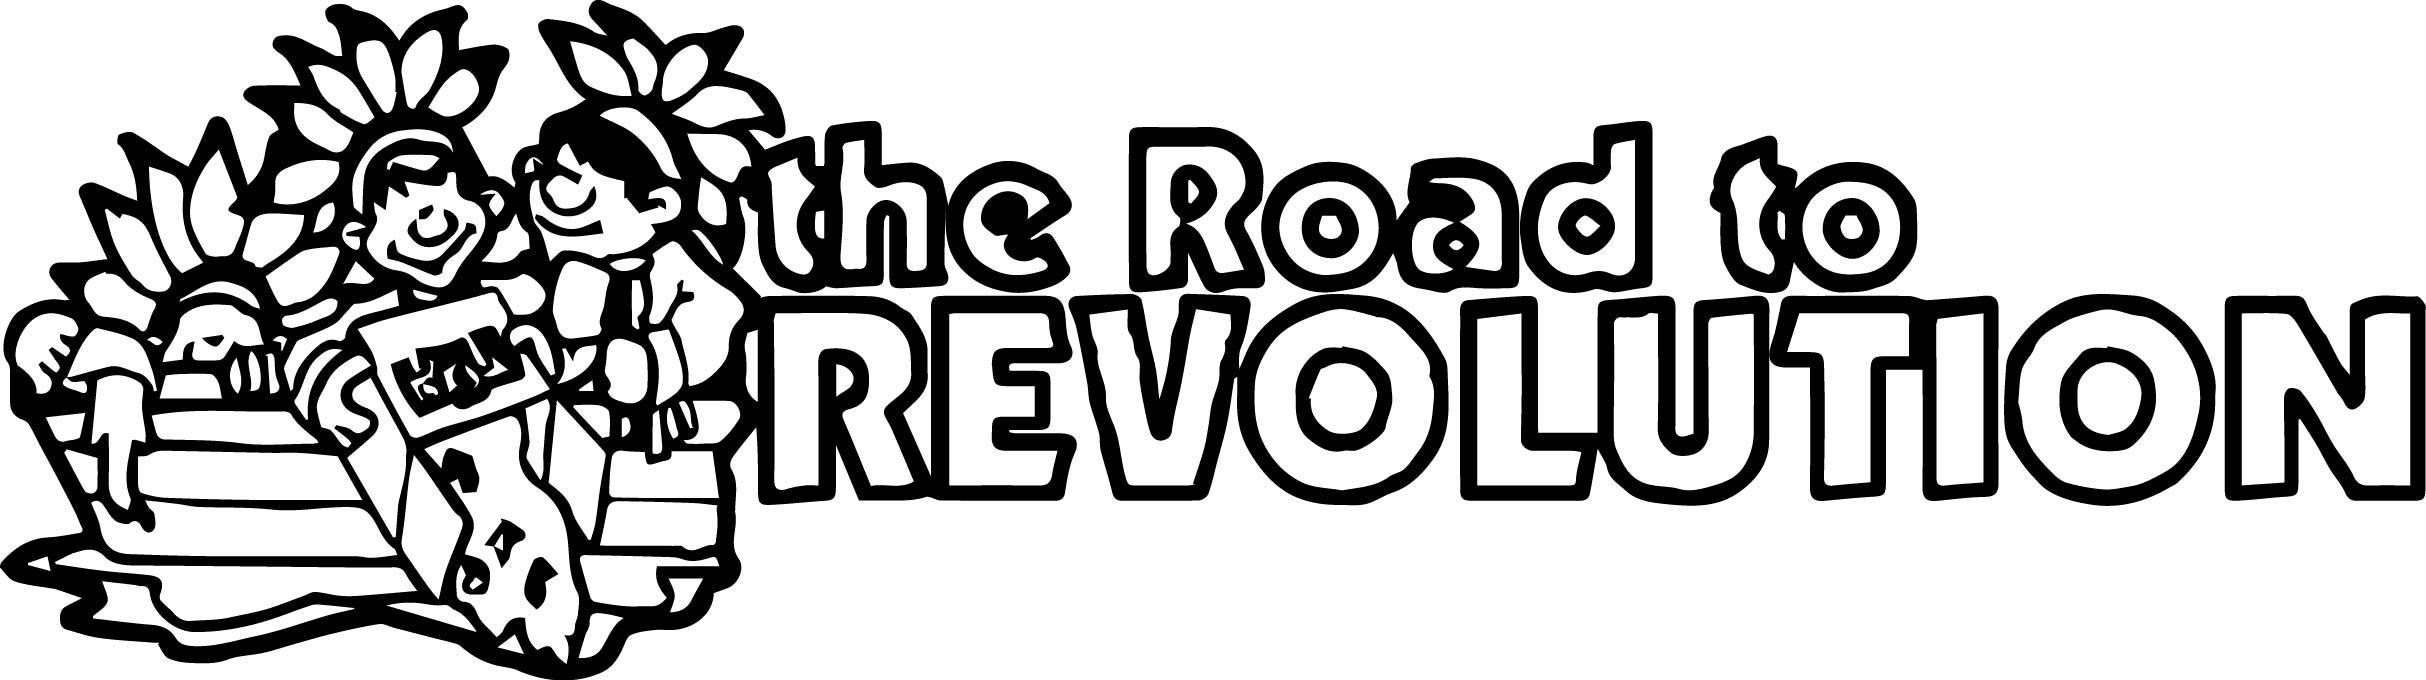 American Revolution Banner Road To Revolution Coloring Page ...